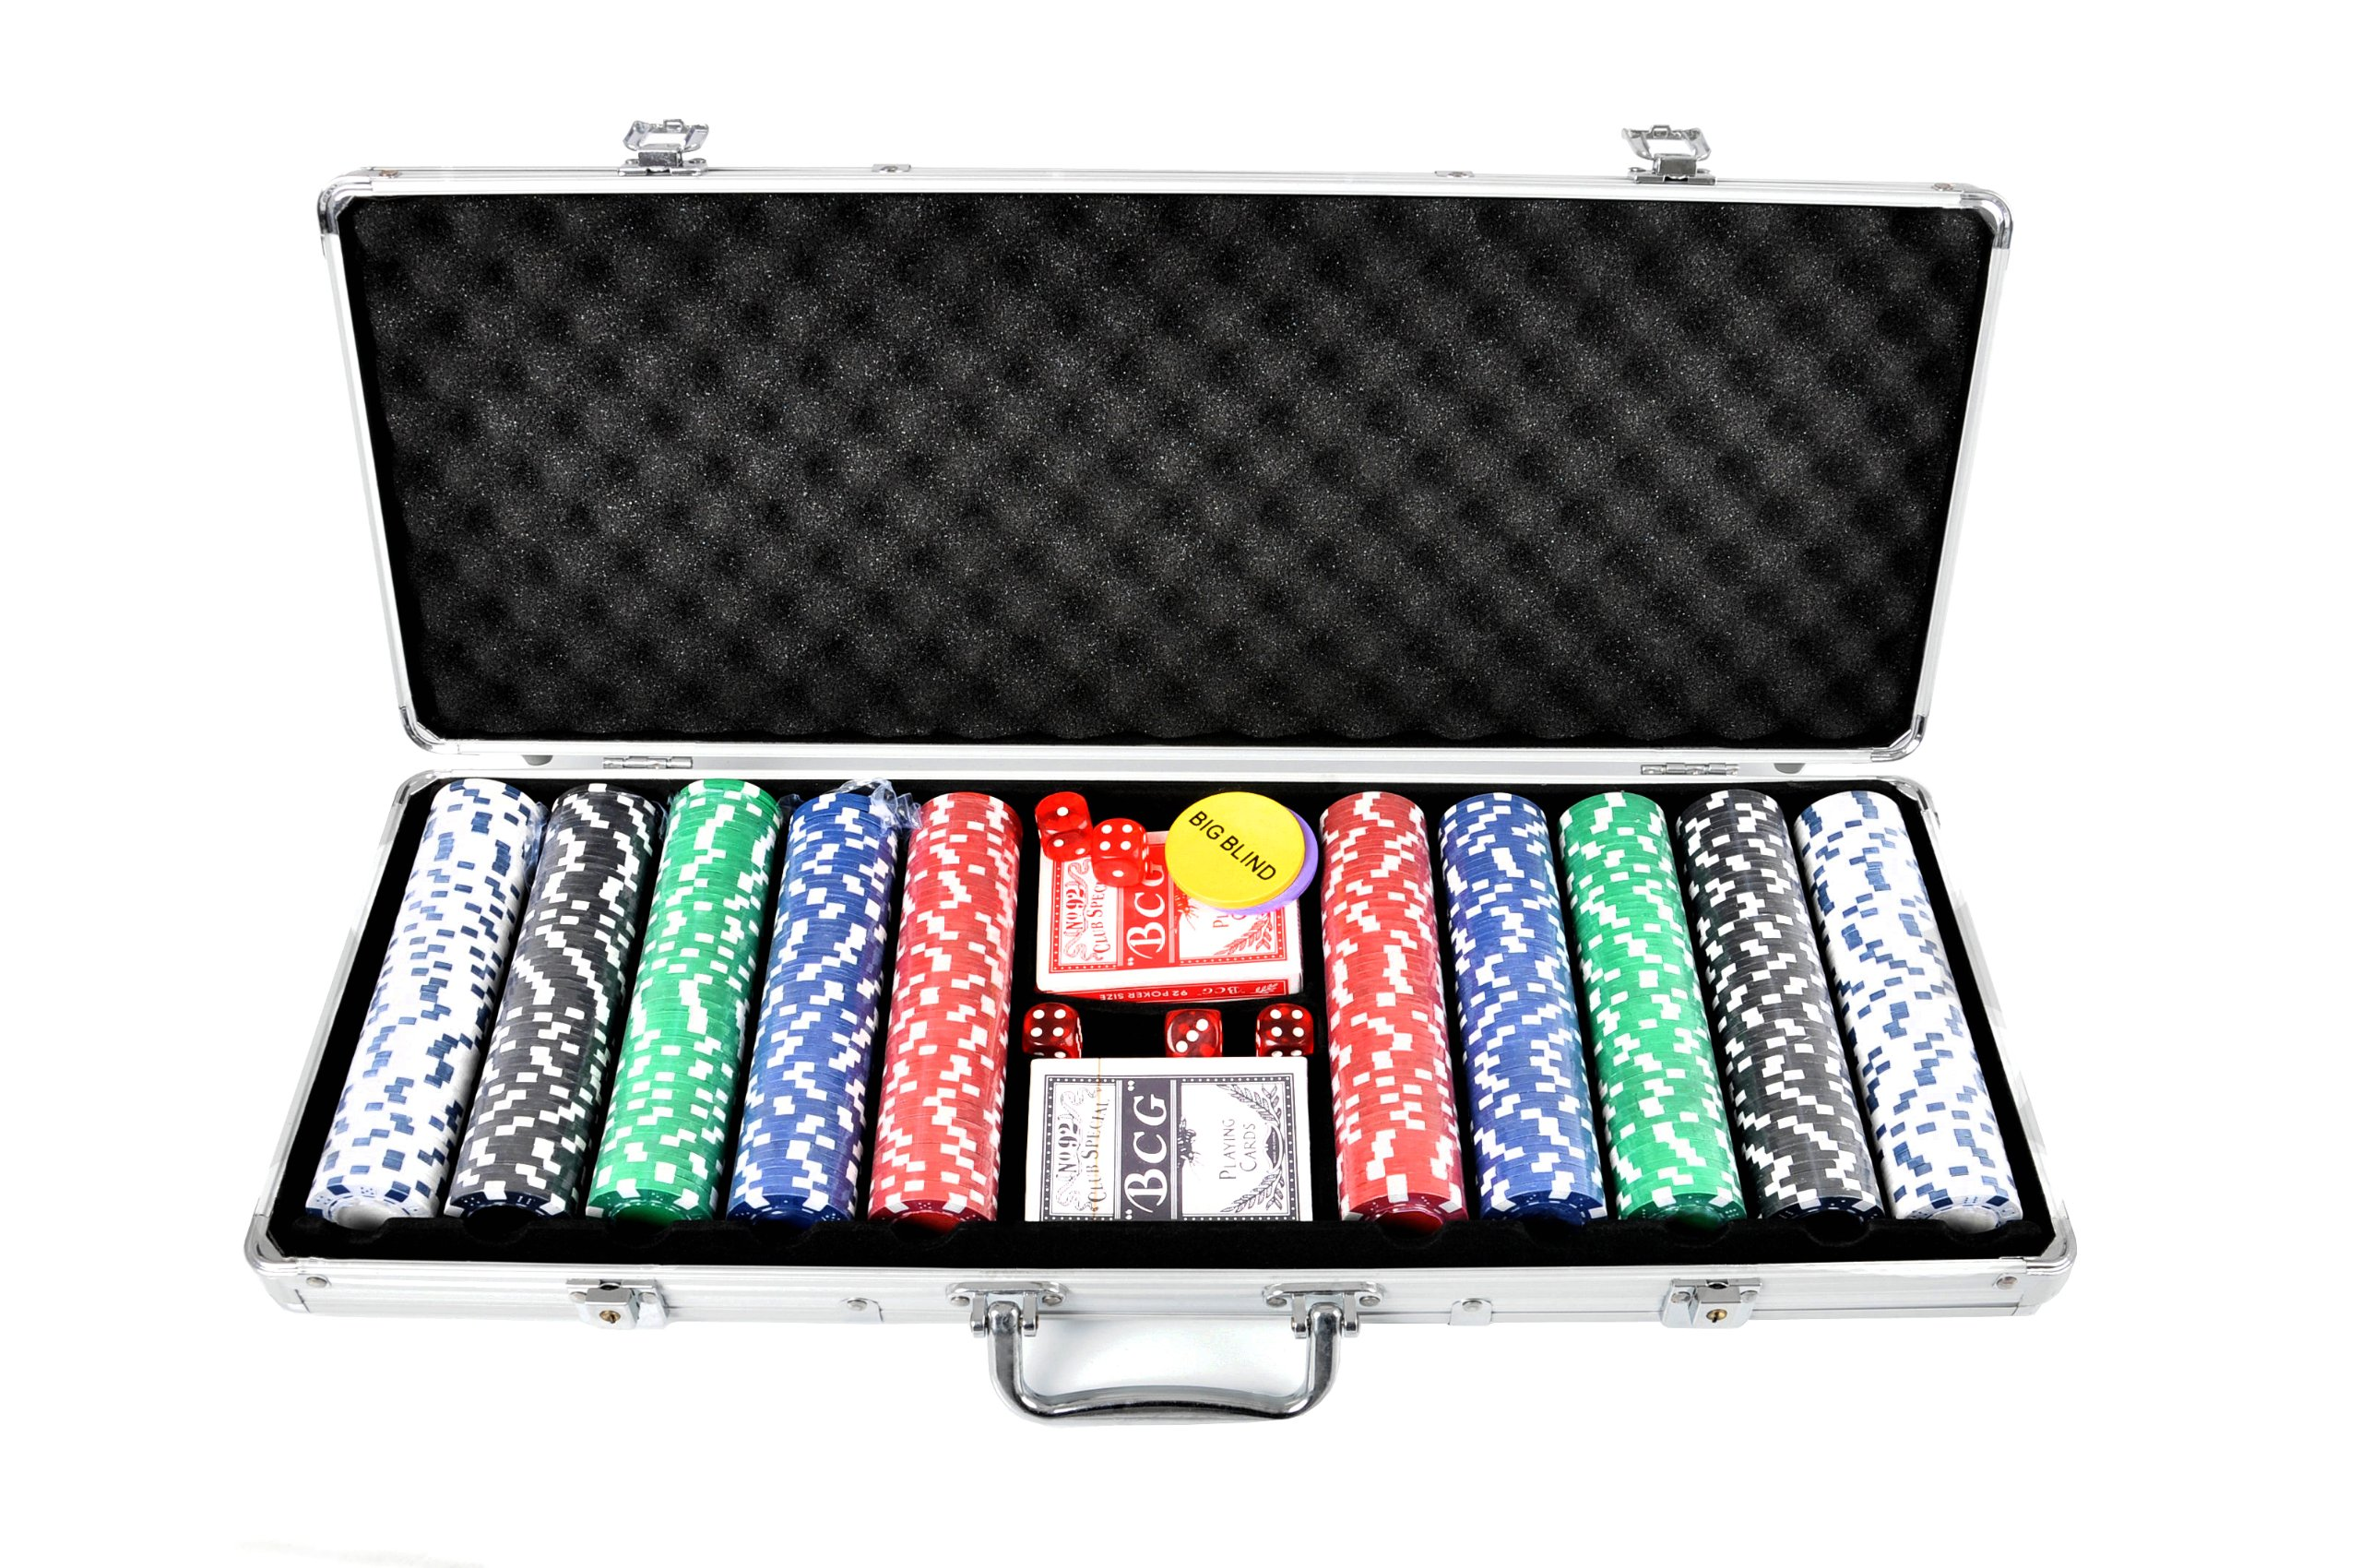 FA Sports 910 Casino Ocean 500-Piece Poker Chip Set, Silver, 58 x 24 x 7.5 cm by FA Sports by FA Sports